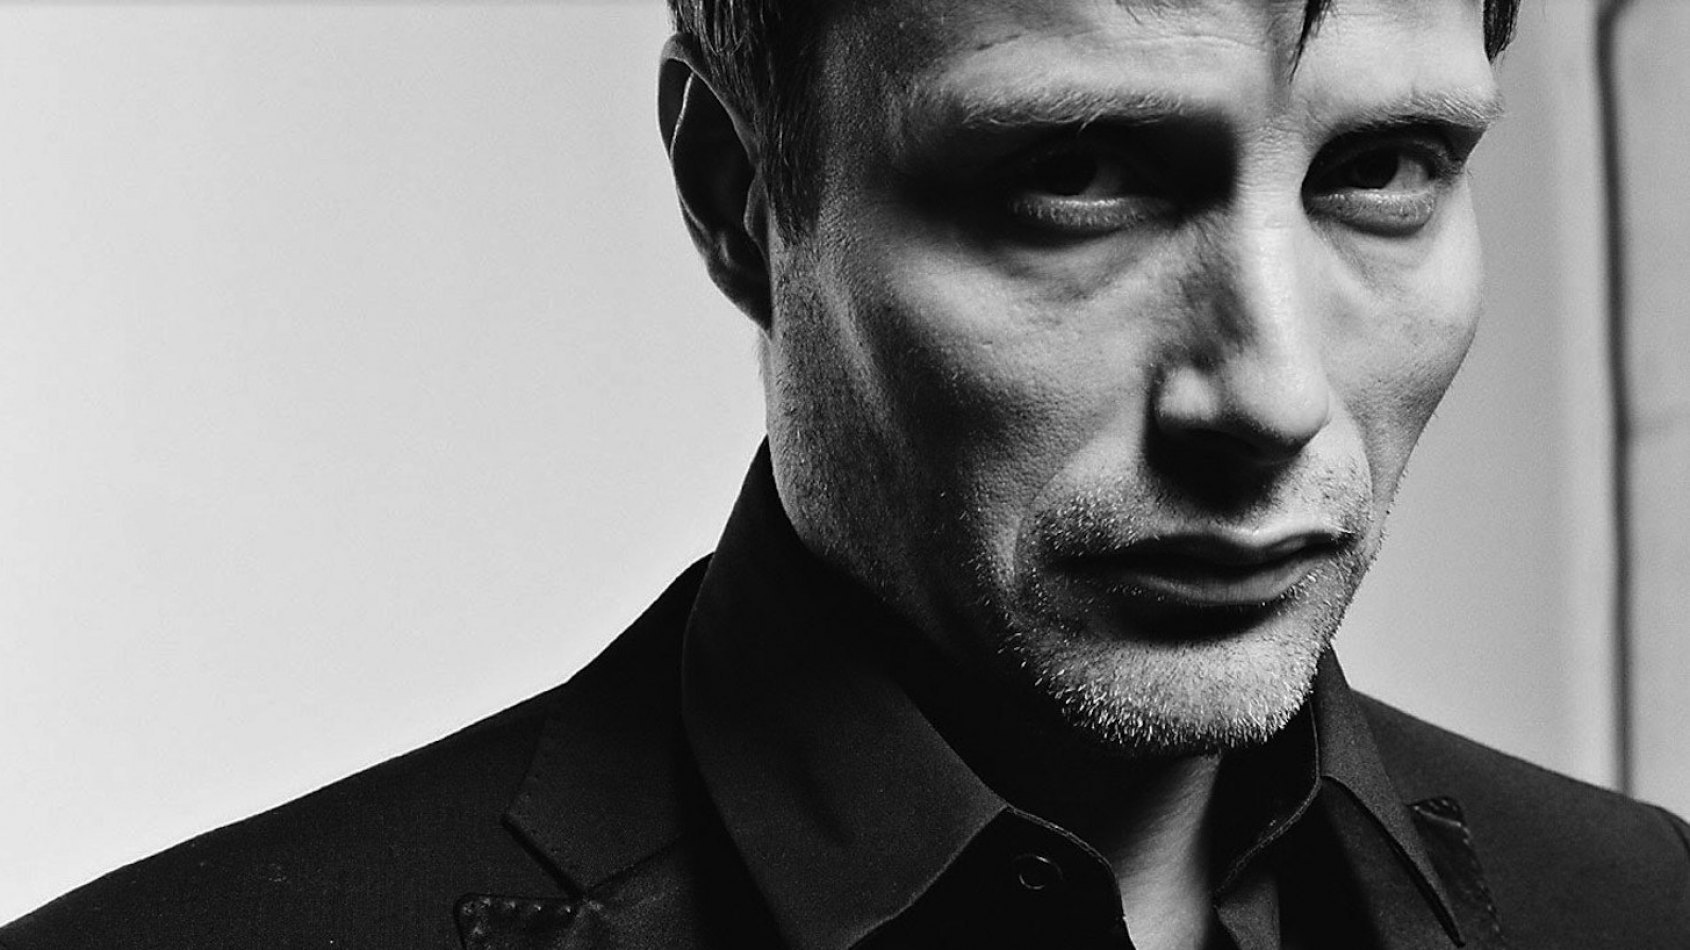 Mads Mikkelsen confirme son rôle dans Rogue One